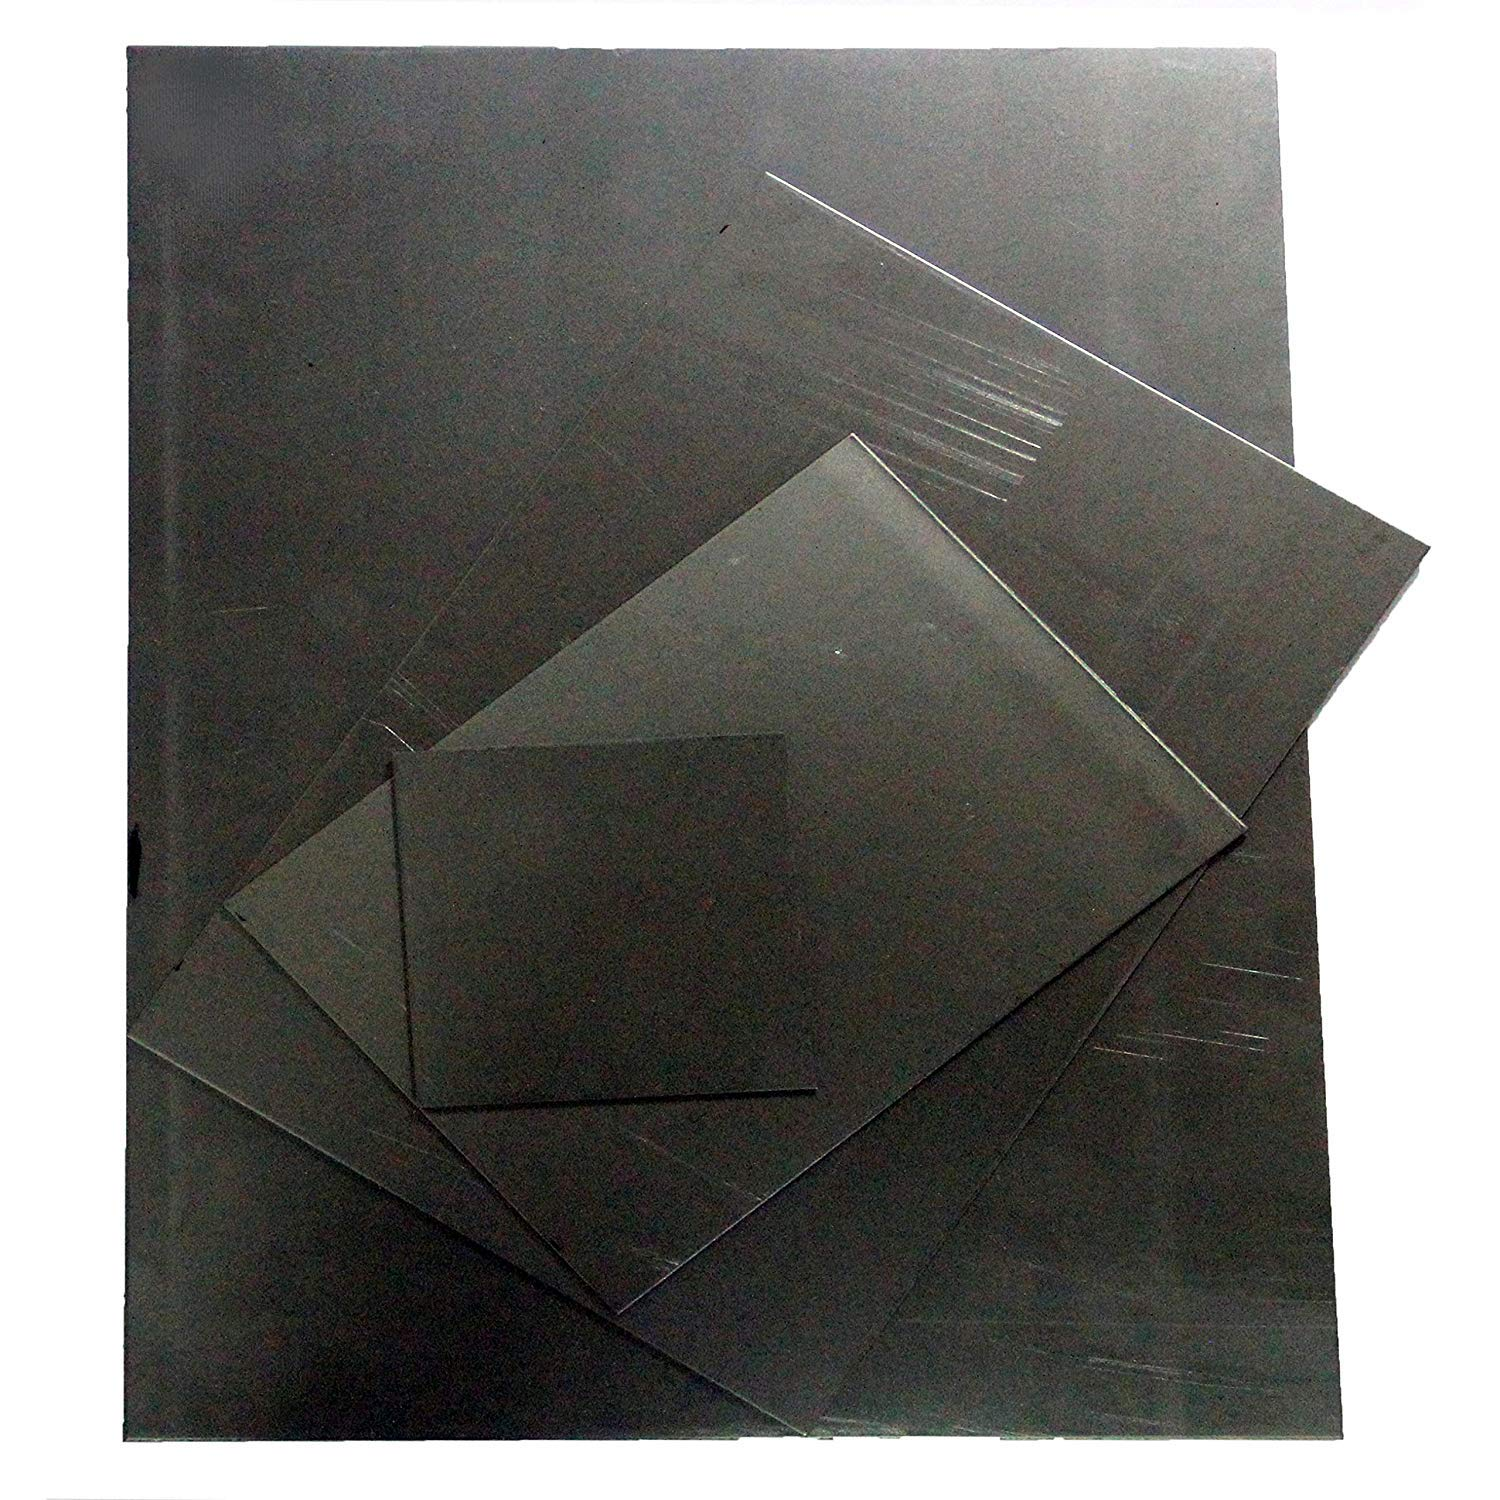 1.2mm Thick Mild Steel Sheet Plate 100 x 100mm